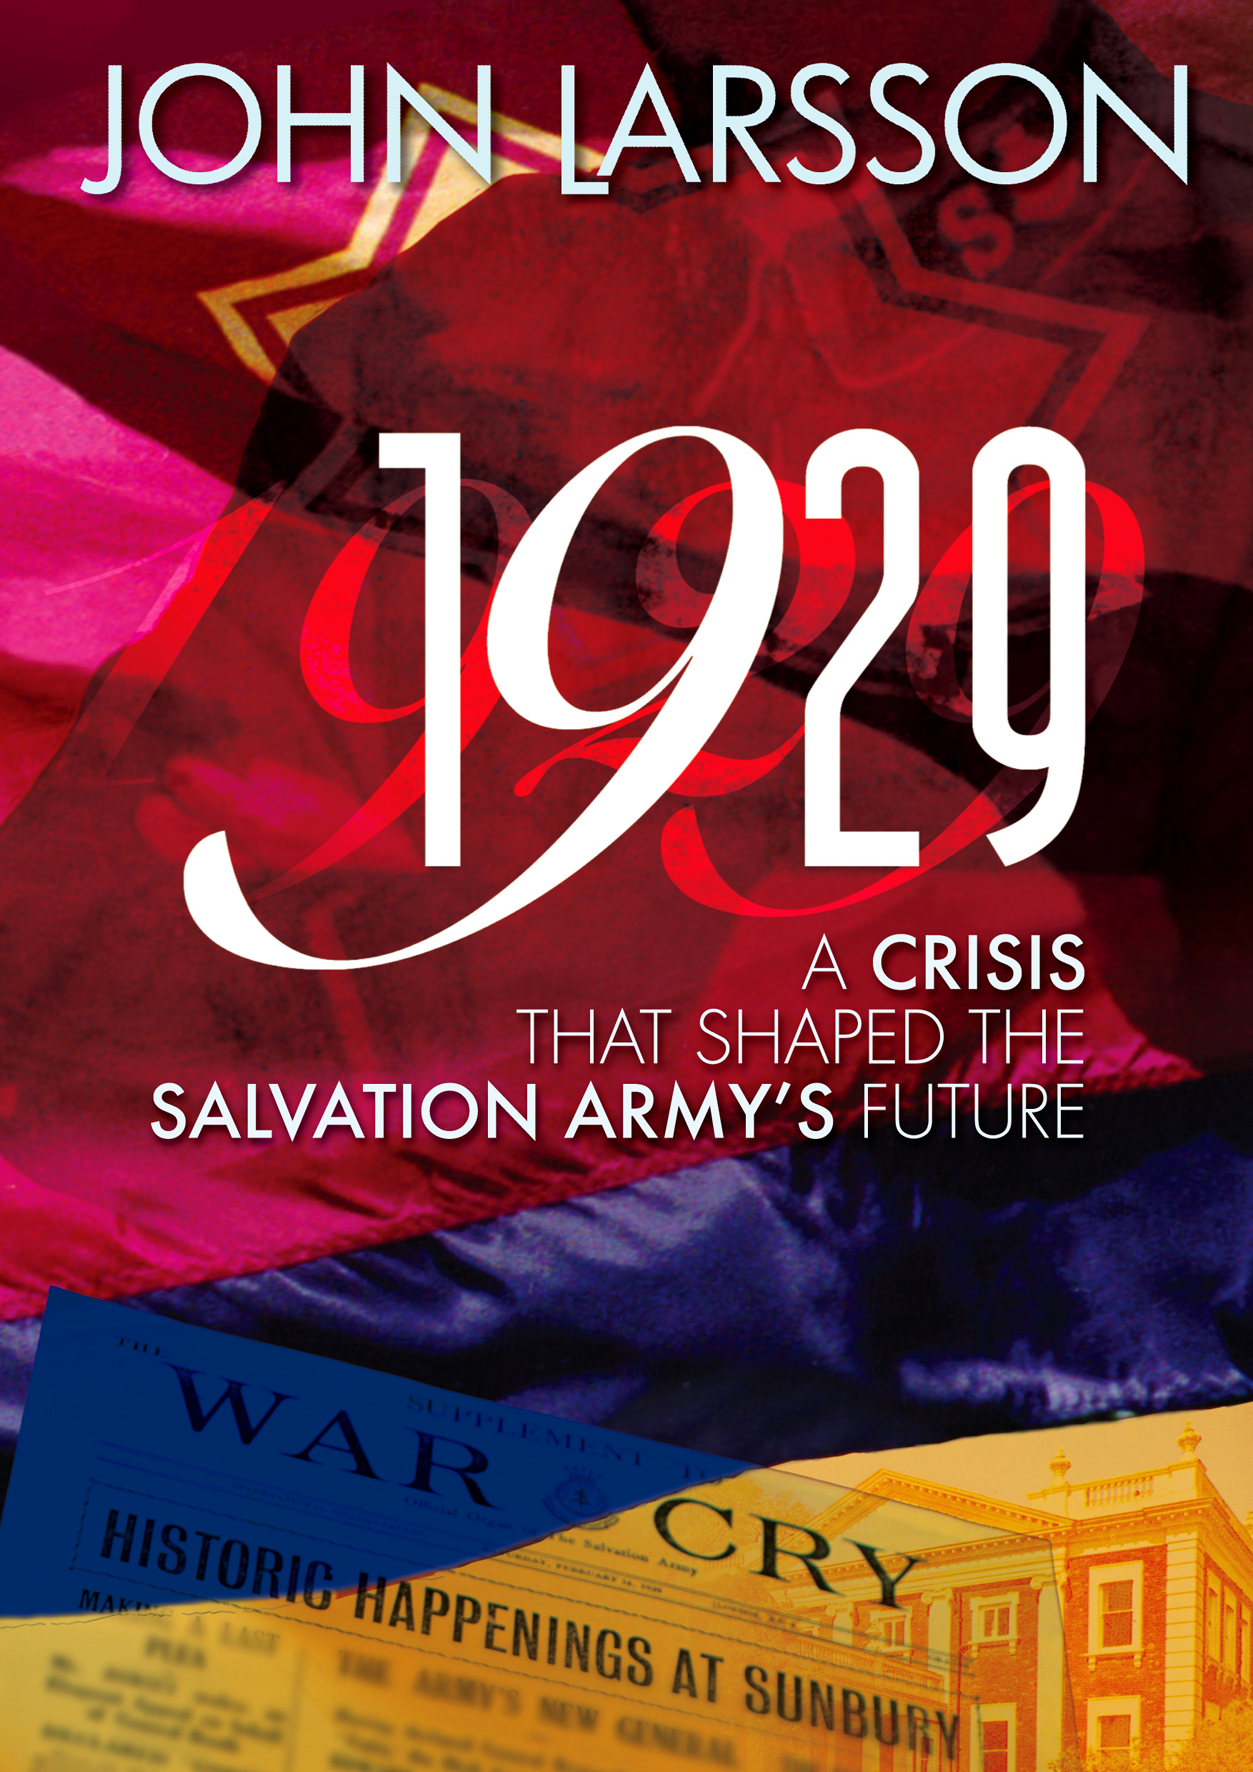 1929 A Crisis That Shaped The Salvation Army's Future